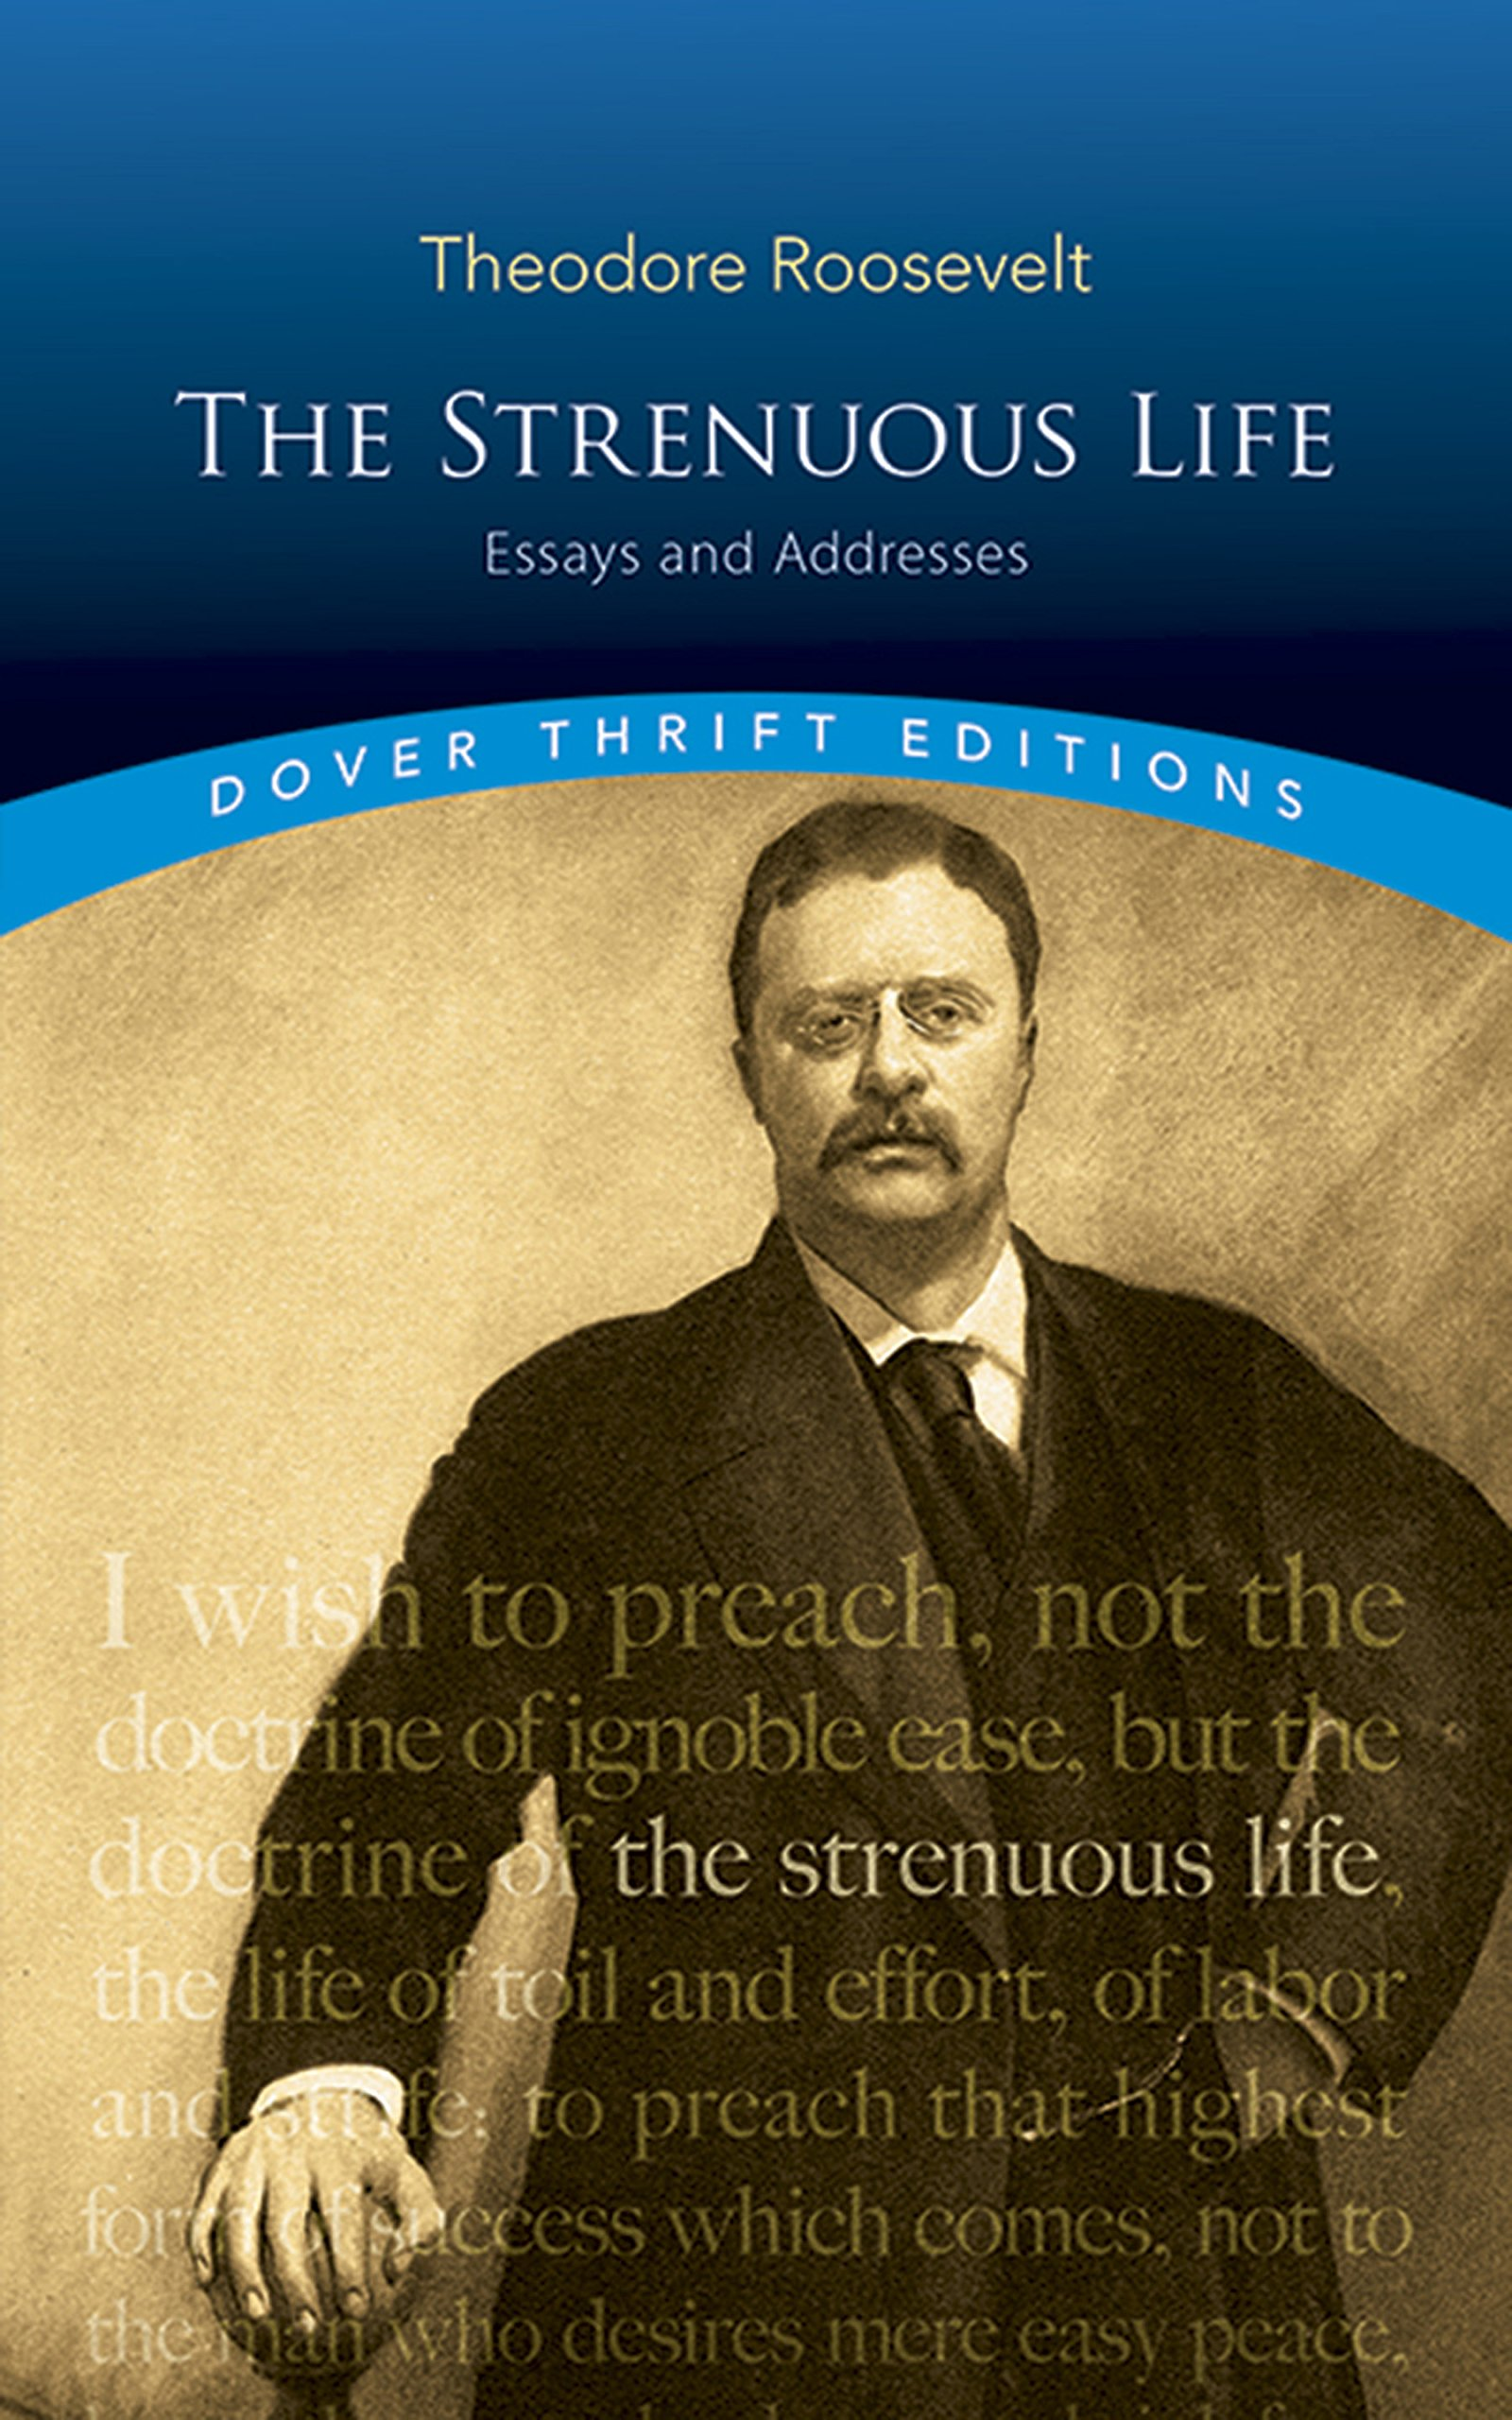 The Strenuous Life: Essays and Addresses (Dover Thrift Editions): Theodore Roosevelt: 9780486472294: Amazon.com: Books